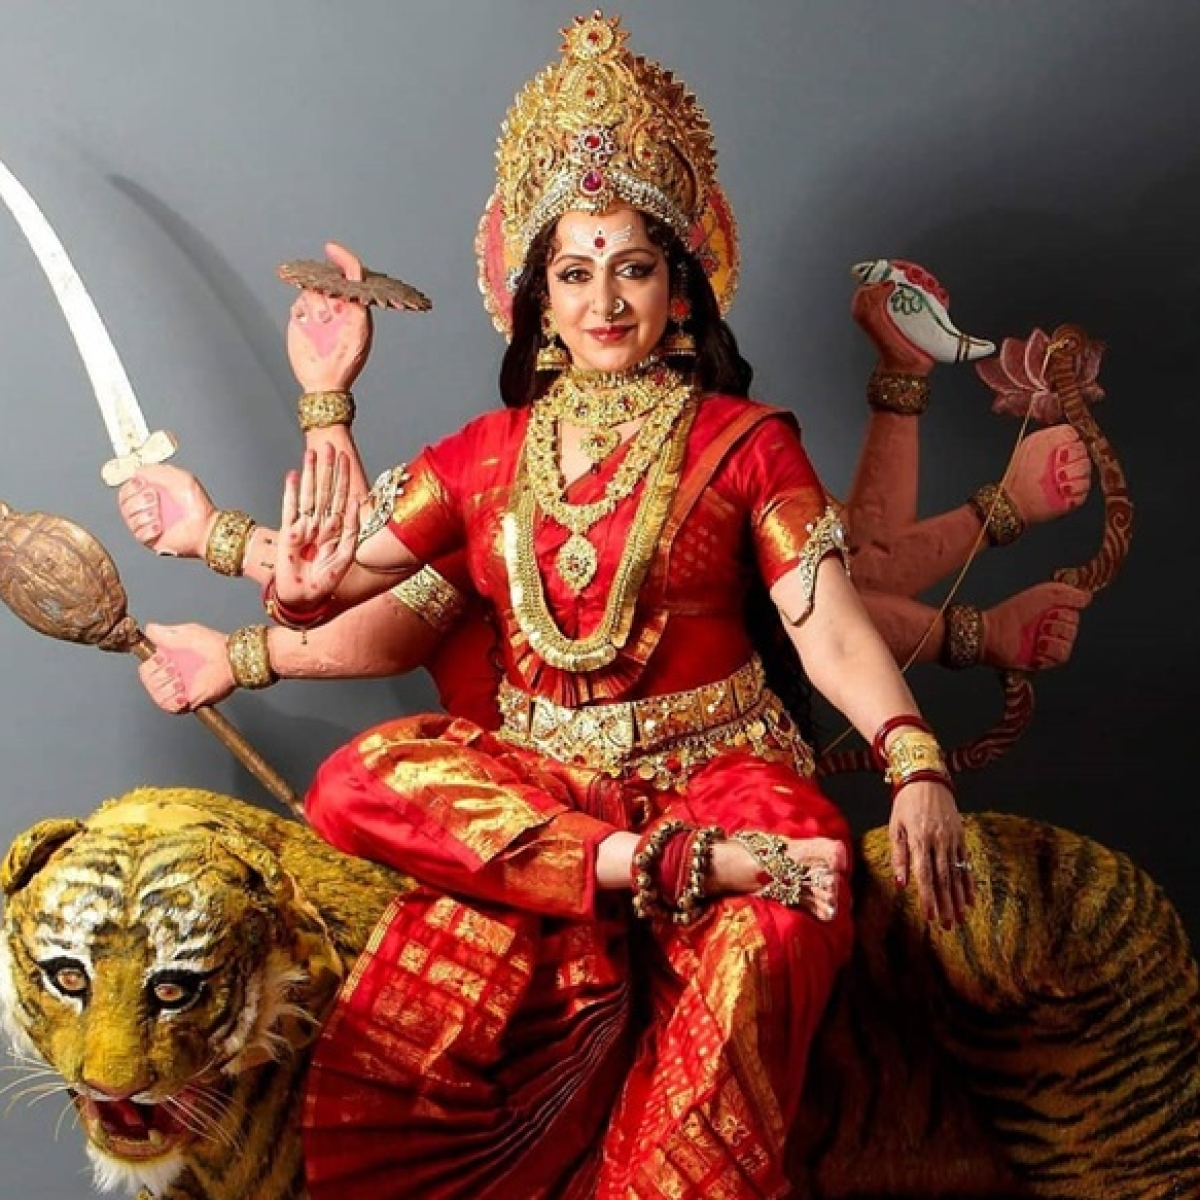 International Women's Day 2020: Which Indian Goddess do you identify with?